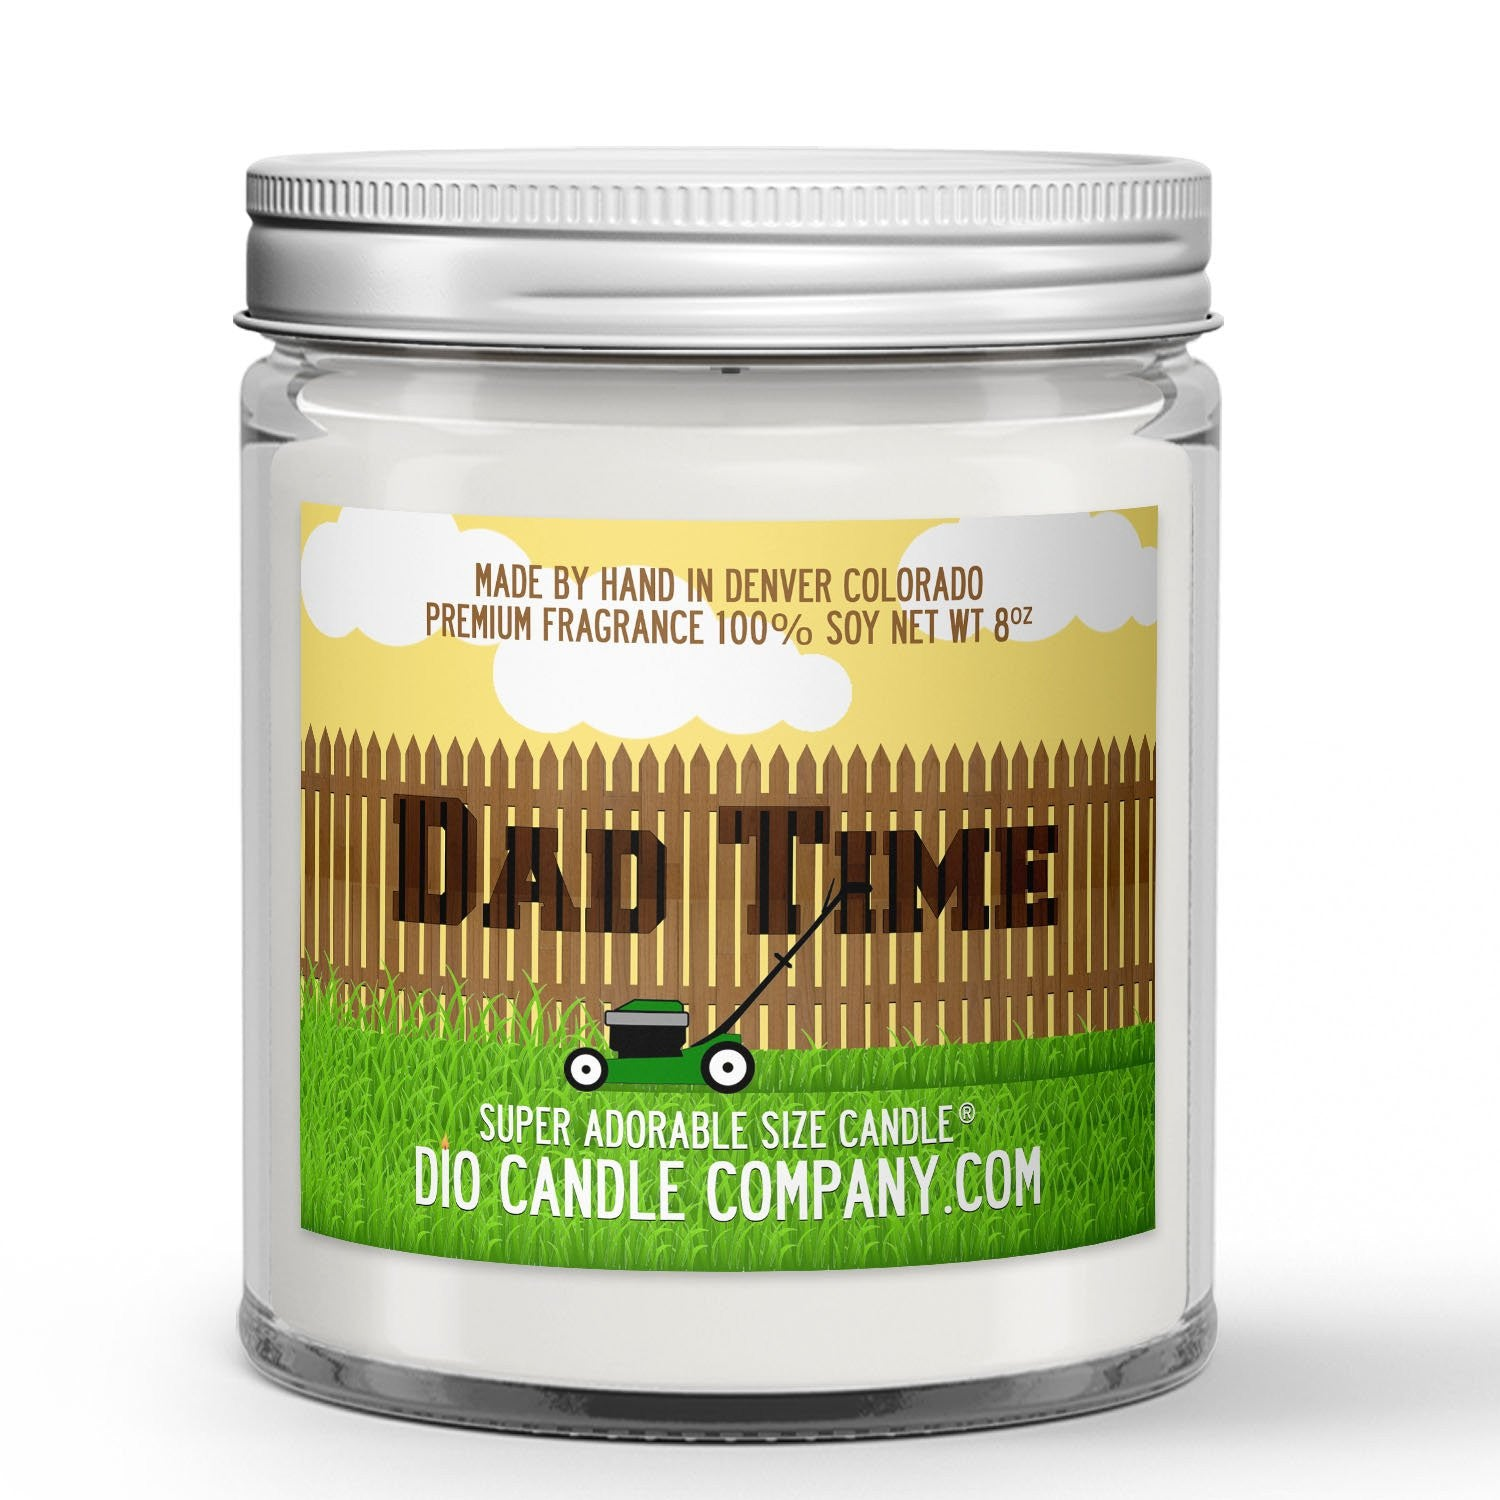 Dad Time Candle - Grass - Sprinkler Water - Earth - 8oz Super Adorable Size Candle® - Dio Candle Company